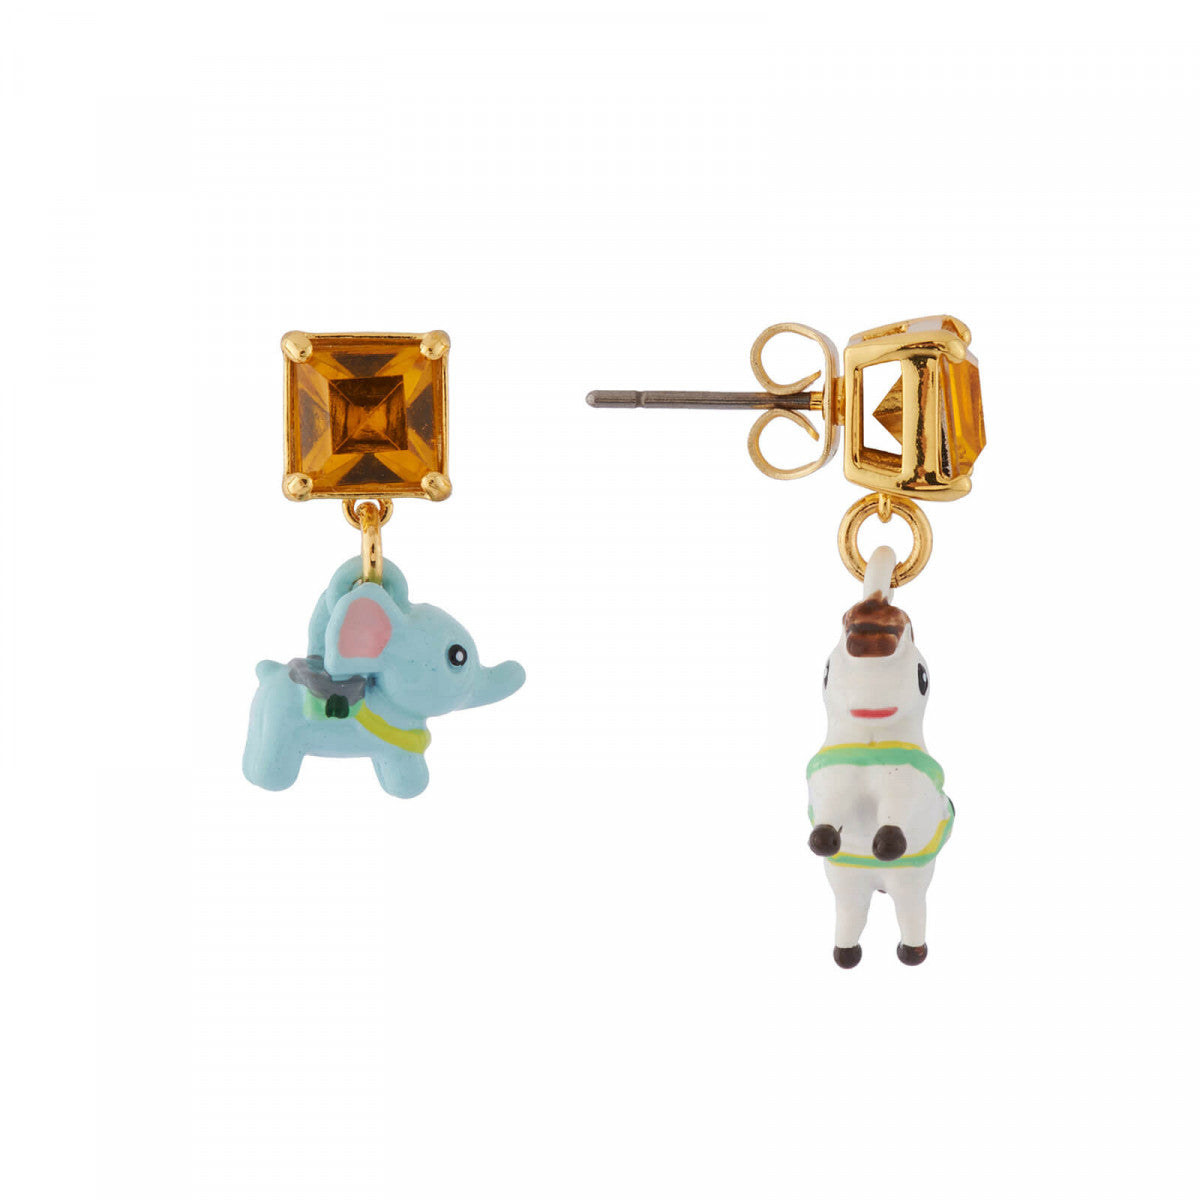 Mini Elephants and Carousel Horse Earrings